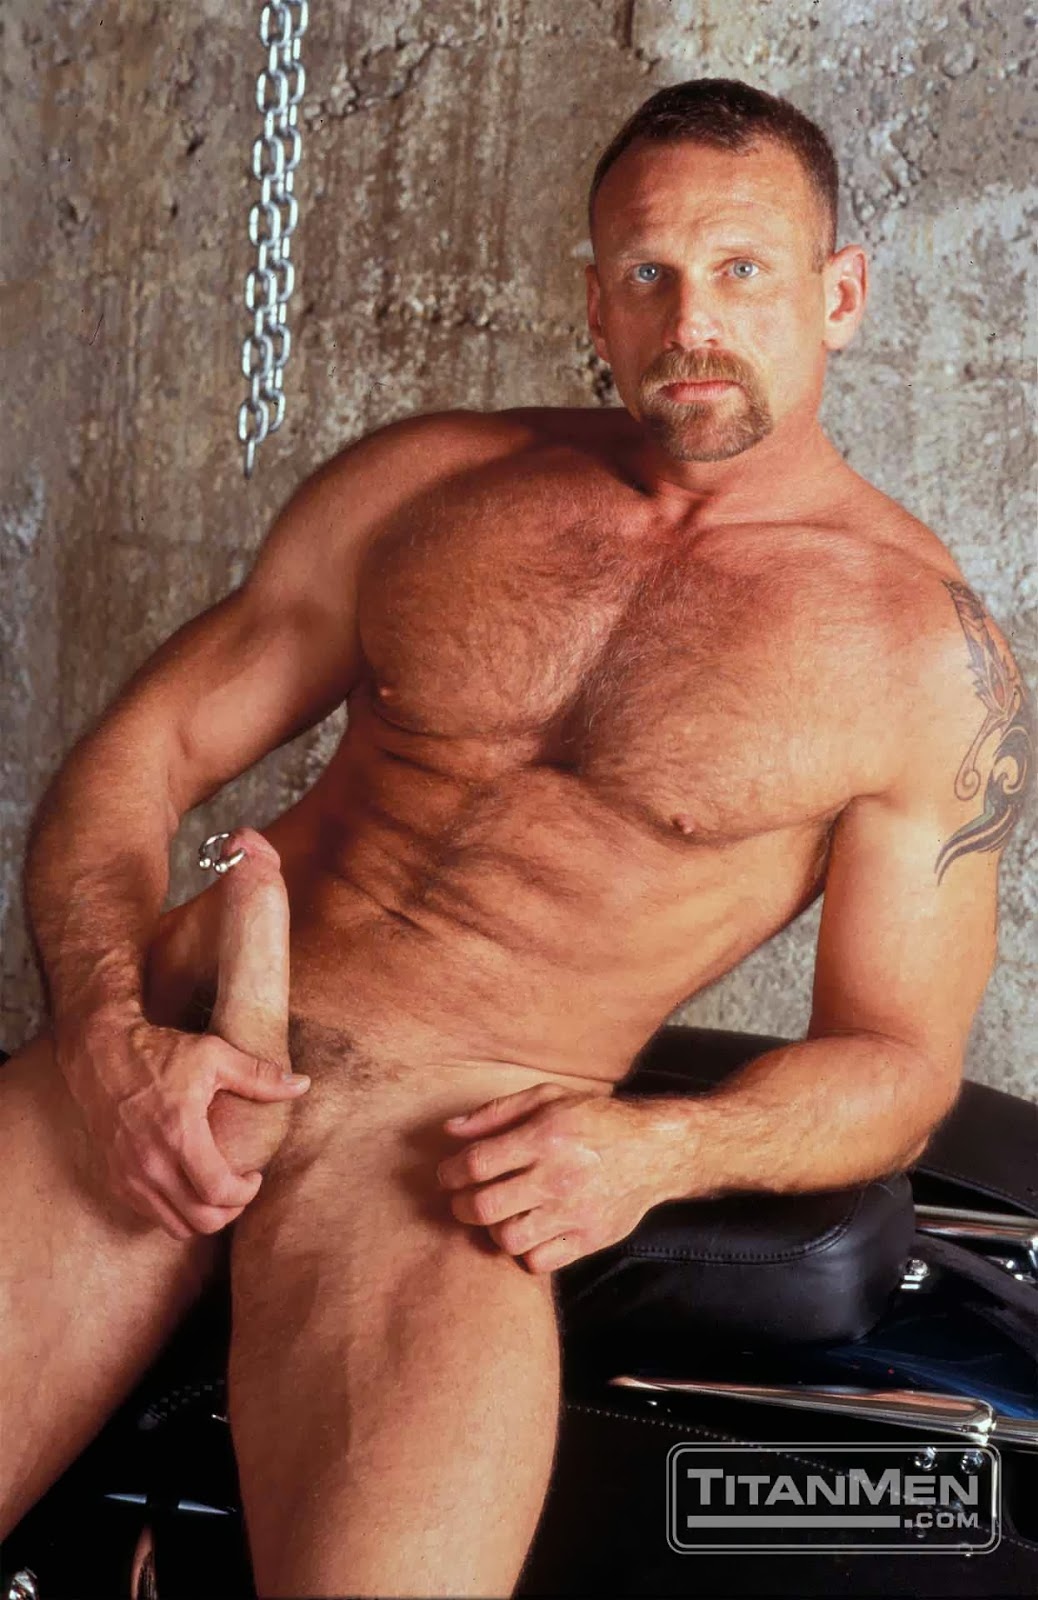 Breck Orshal Porn Ele brutos-eros: hair and muscles